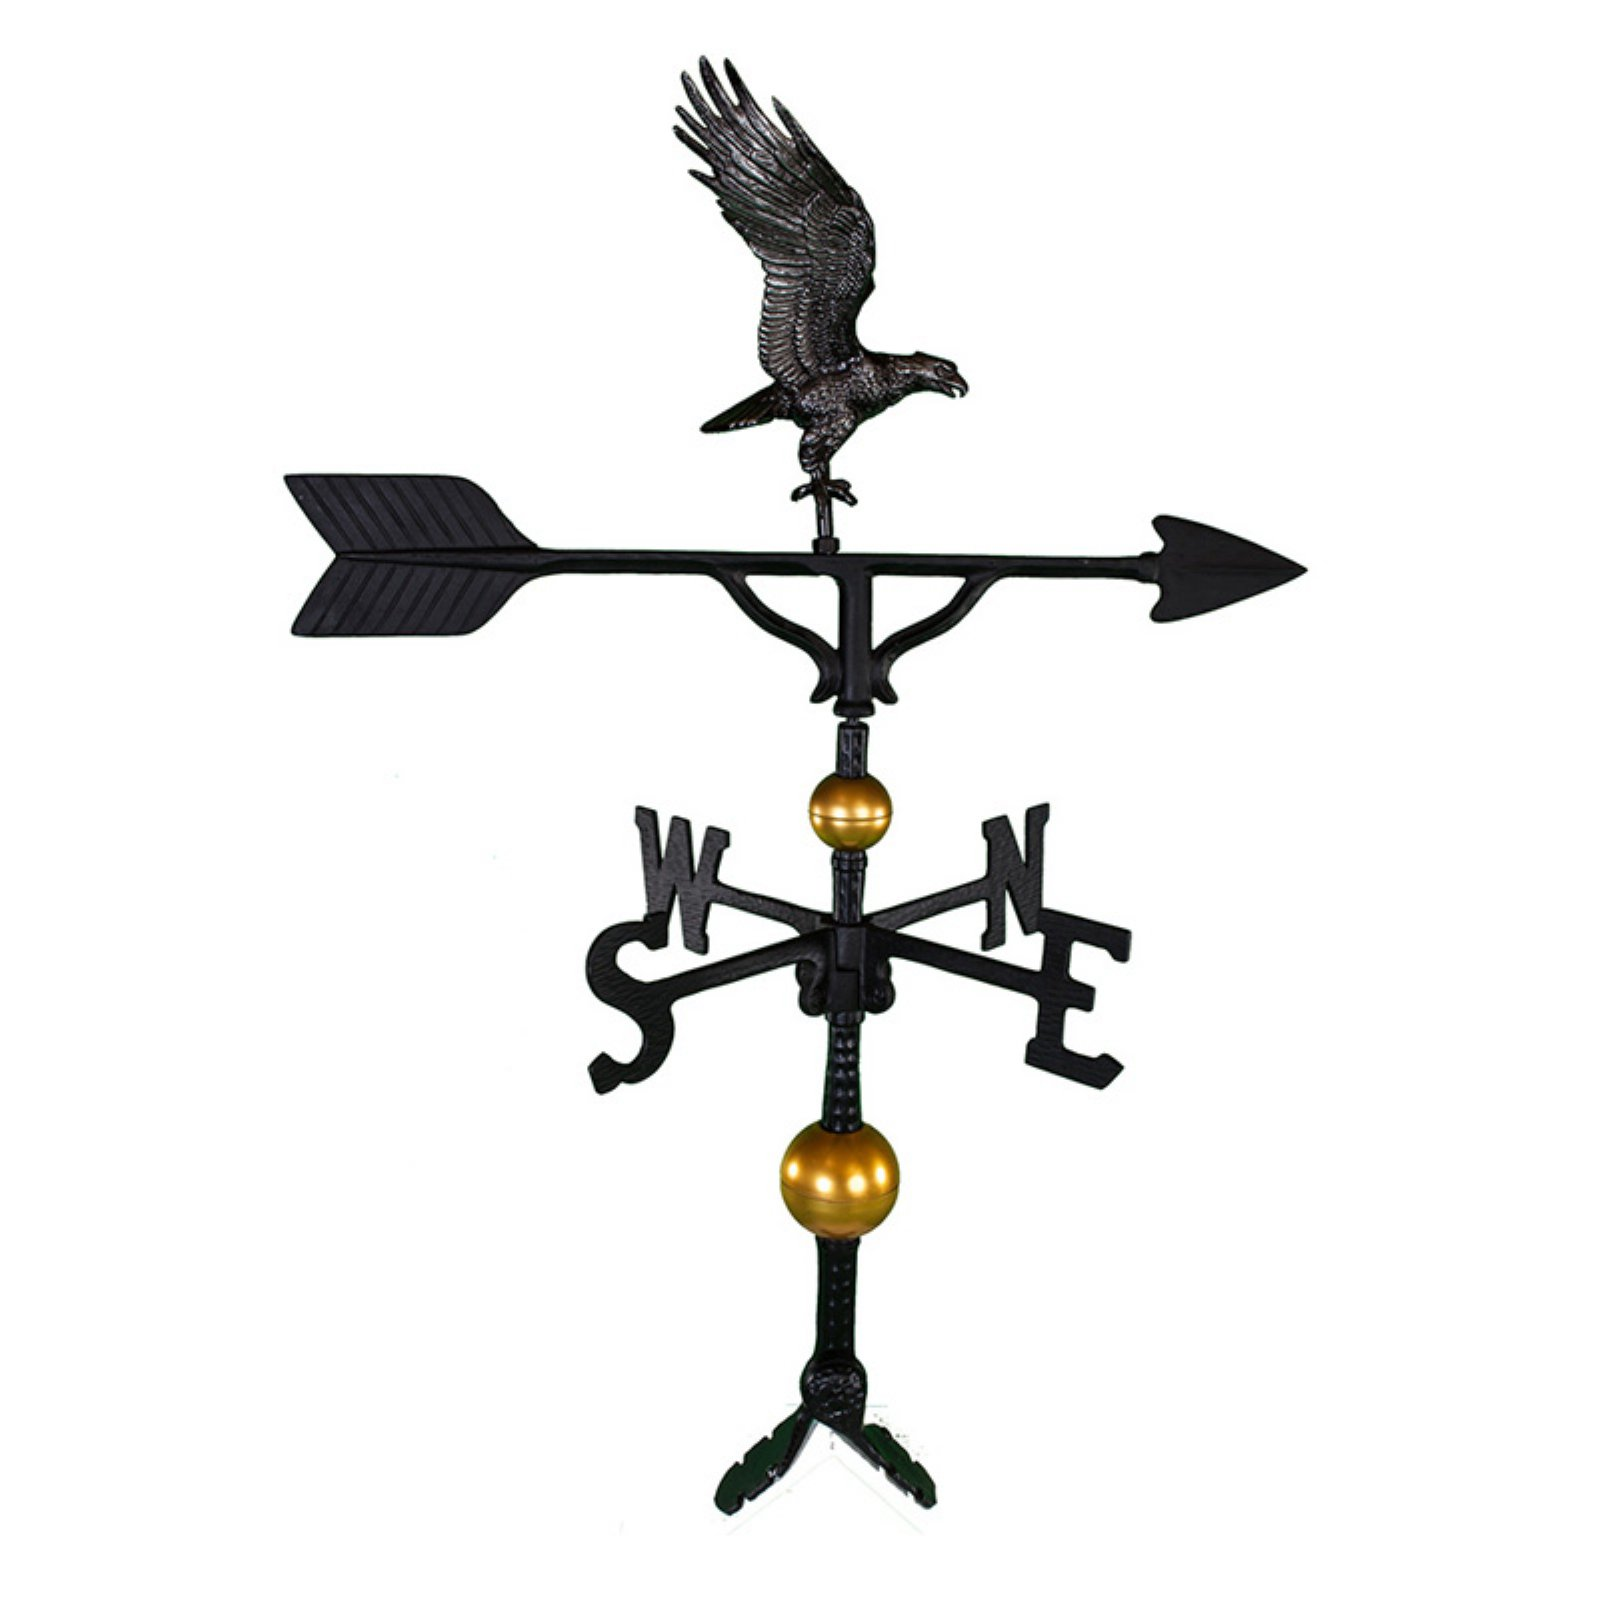 Deluxe Swedish Iron Full Bodied Eagle Weathervane 32 in. by Montague Metal Products